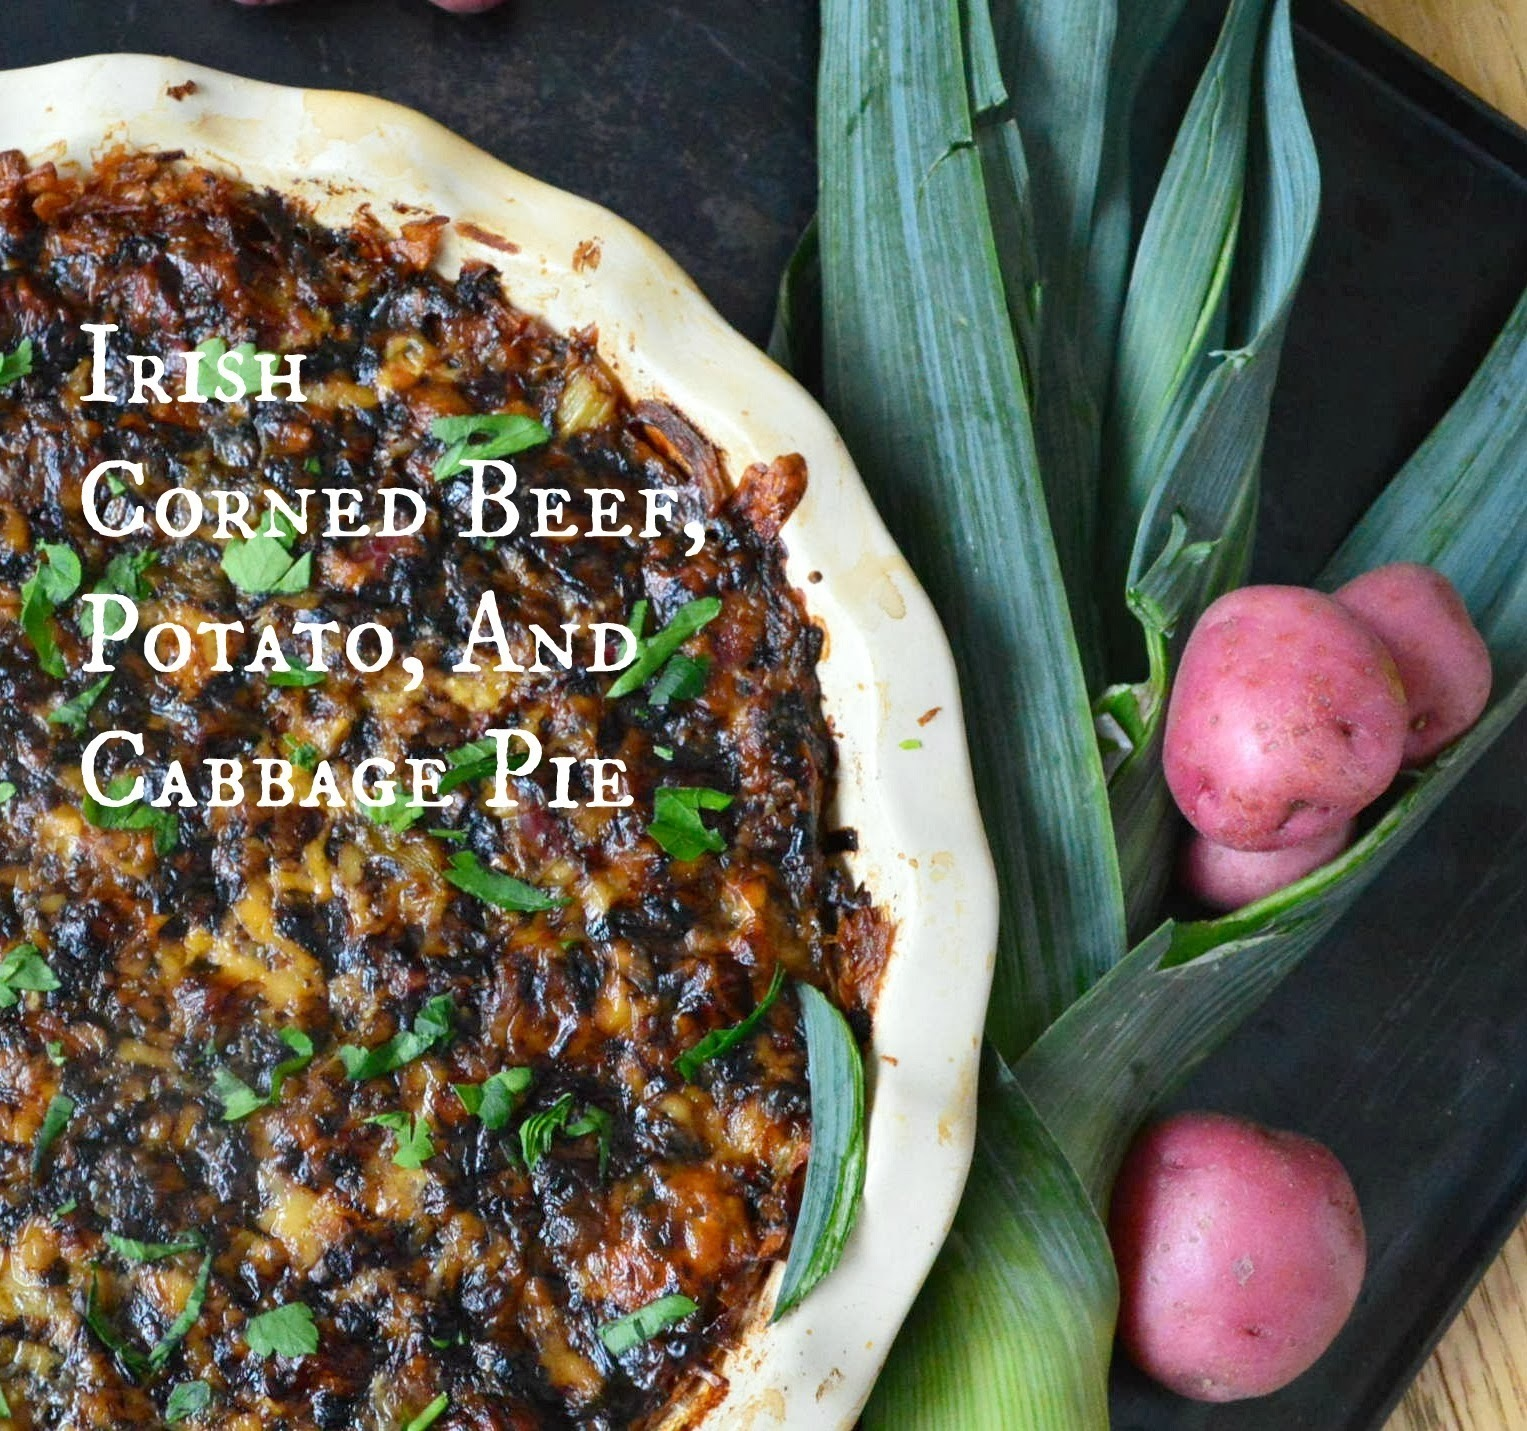 Irish Corned Beef, Potato and Cabbage Pie Plus a #Whole Foods #Giveaway